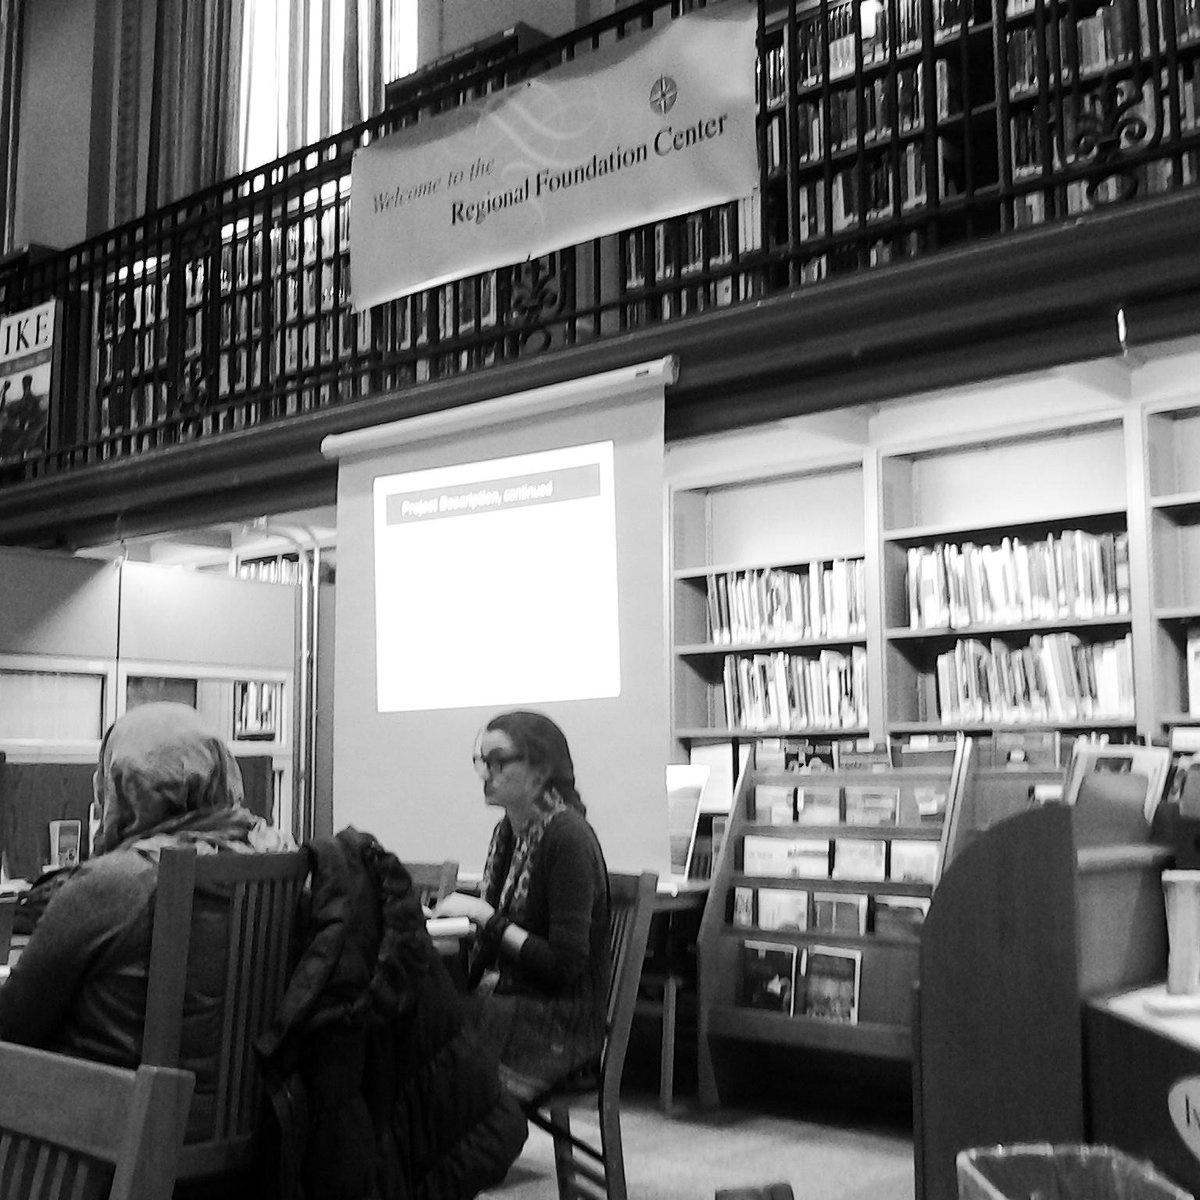 At @FreeLibrary @rfcinfo Proposal Writing Basics. Then online for the #grantchat at noon. #grantwriting day http://t.co/WQvfY6yPkj